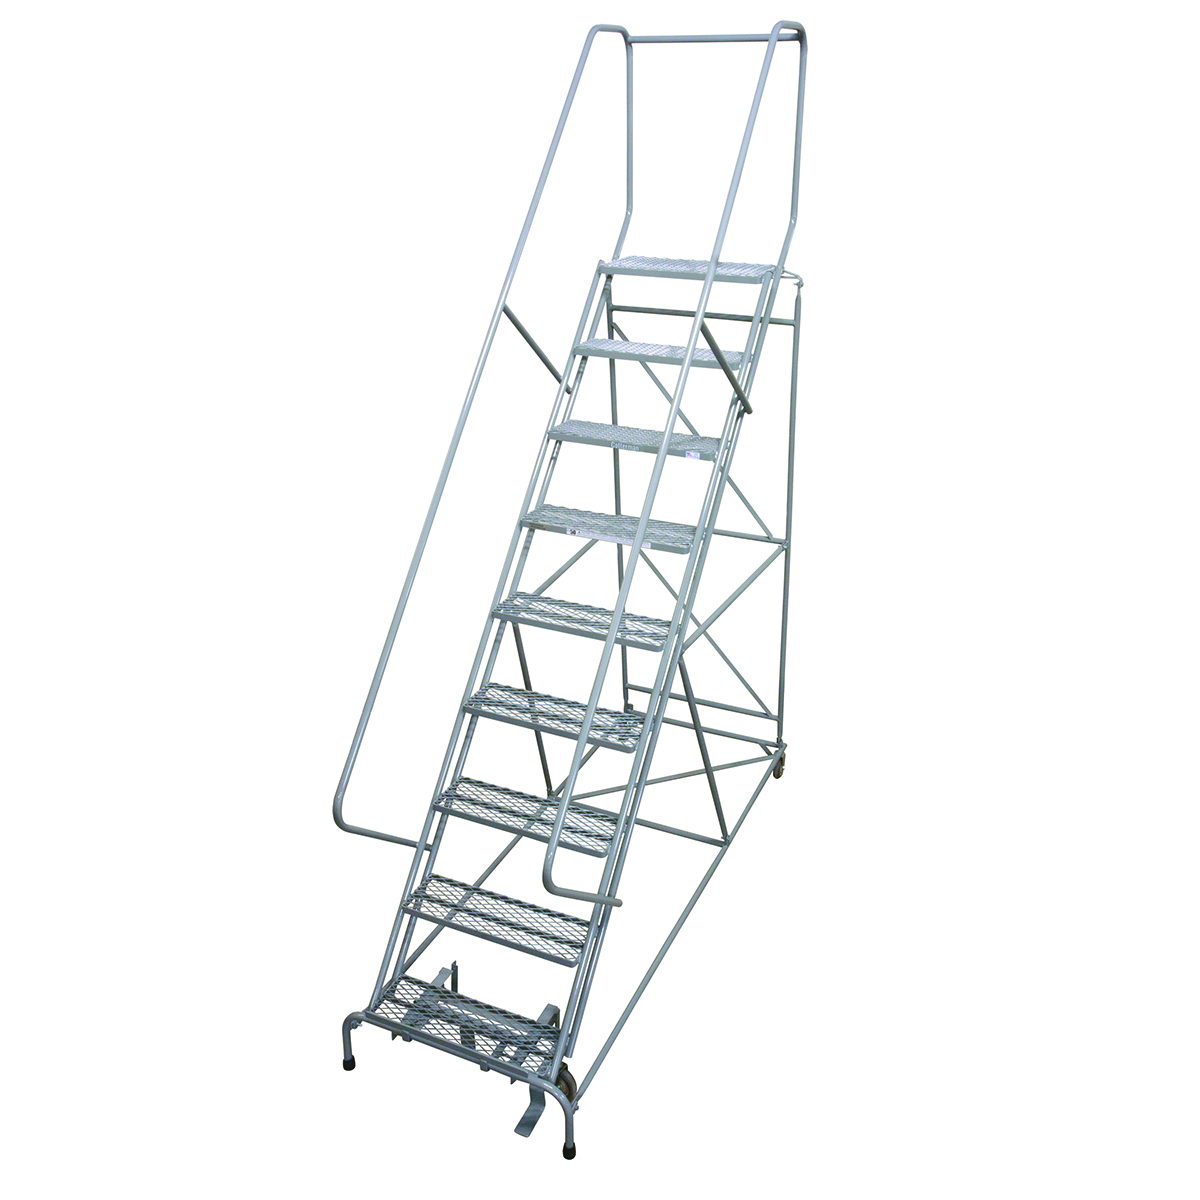 Easy 50 Climbing Angle Ladders